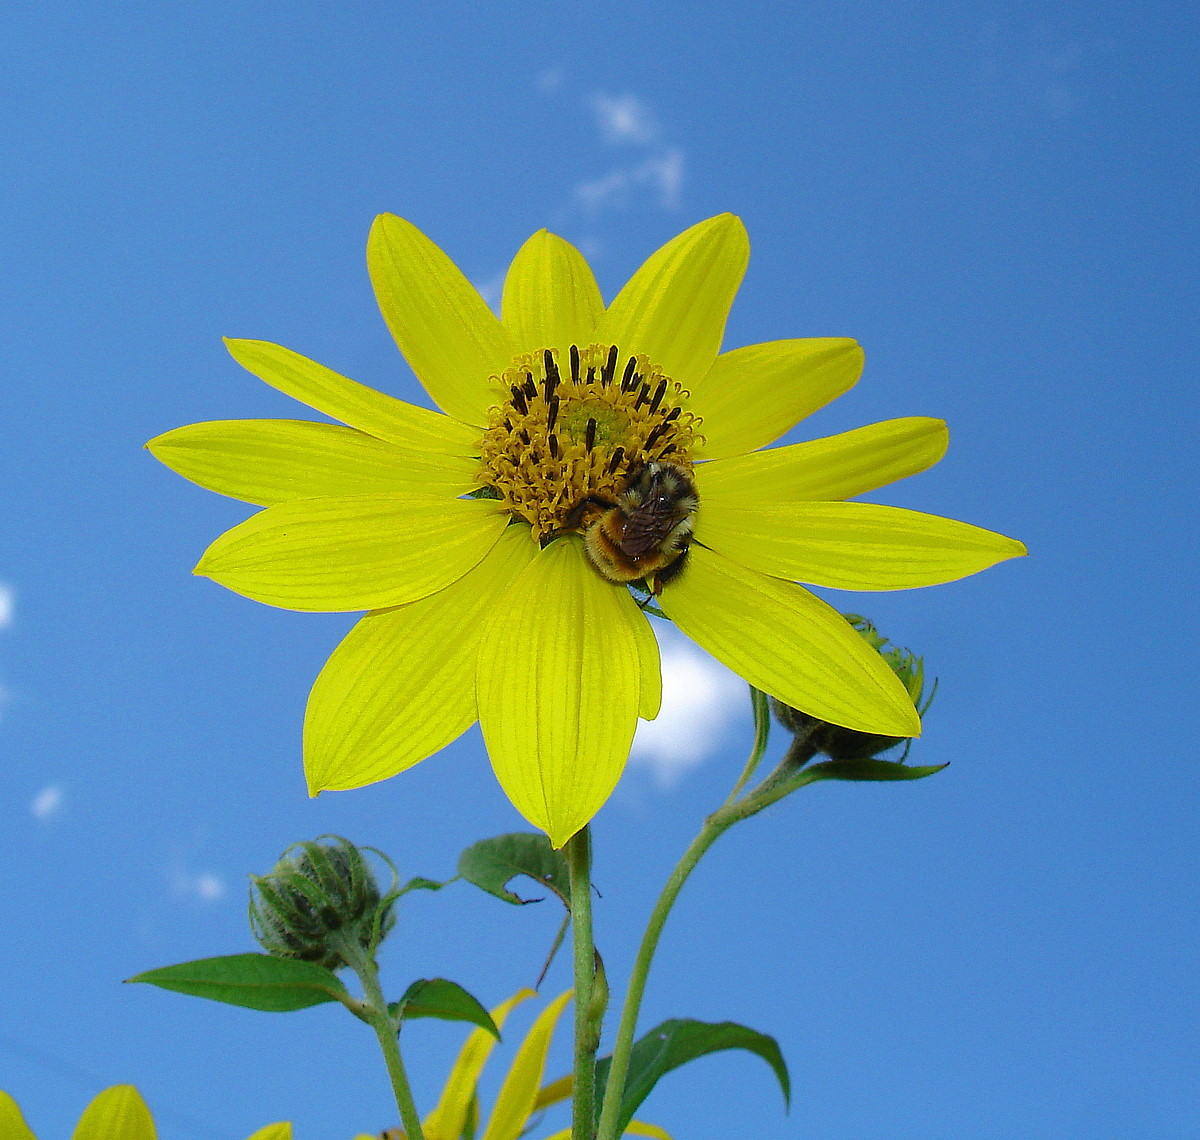 summer blue sky and sunny yellow flower author pl pluskwik paul